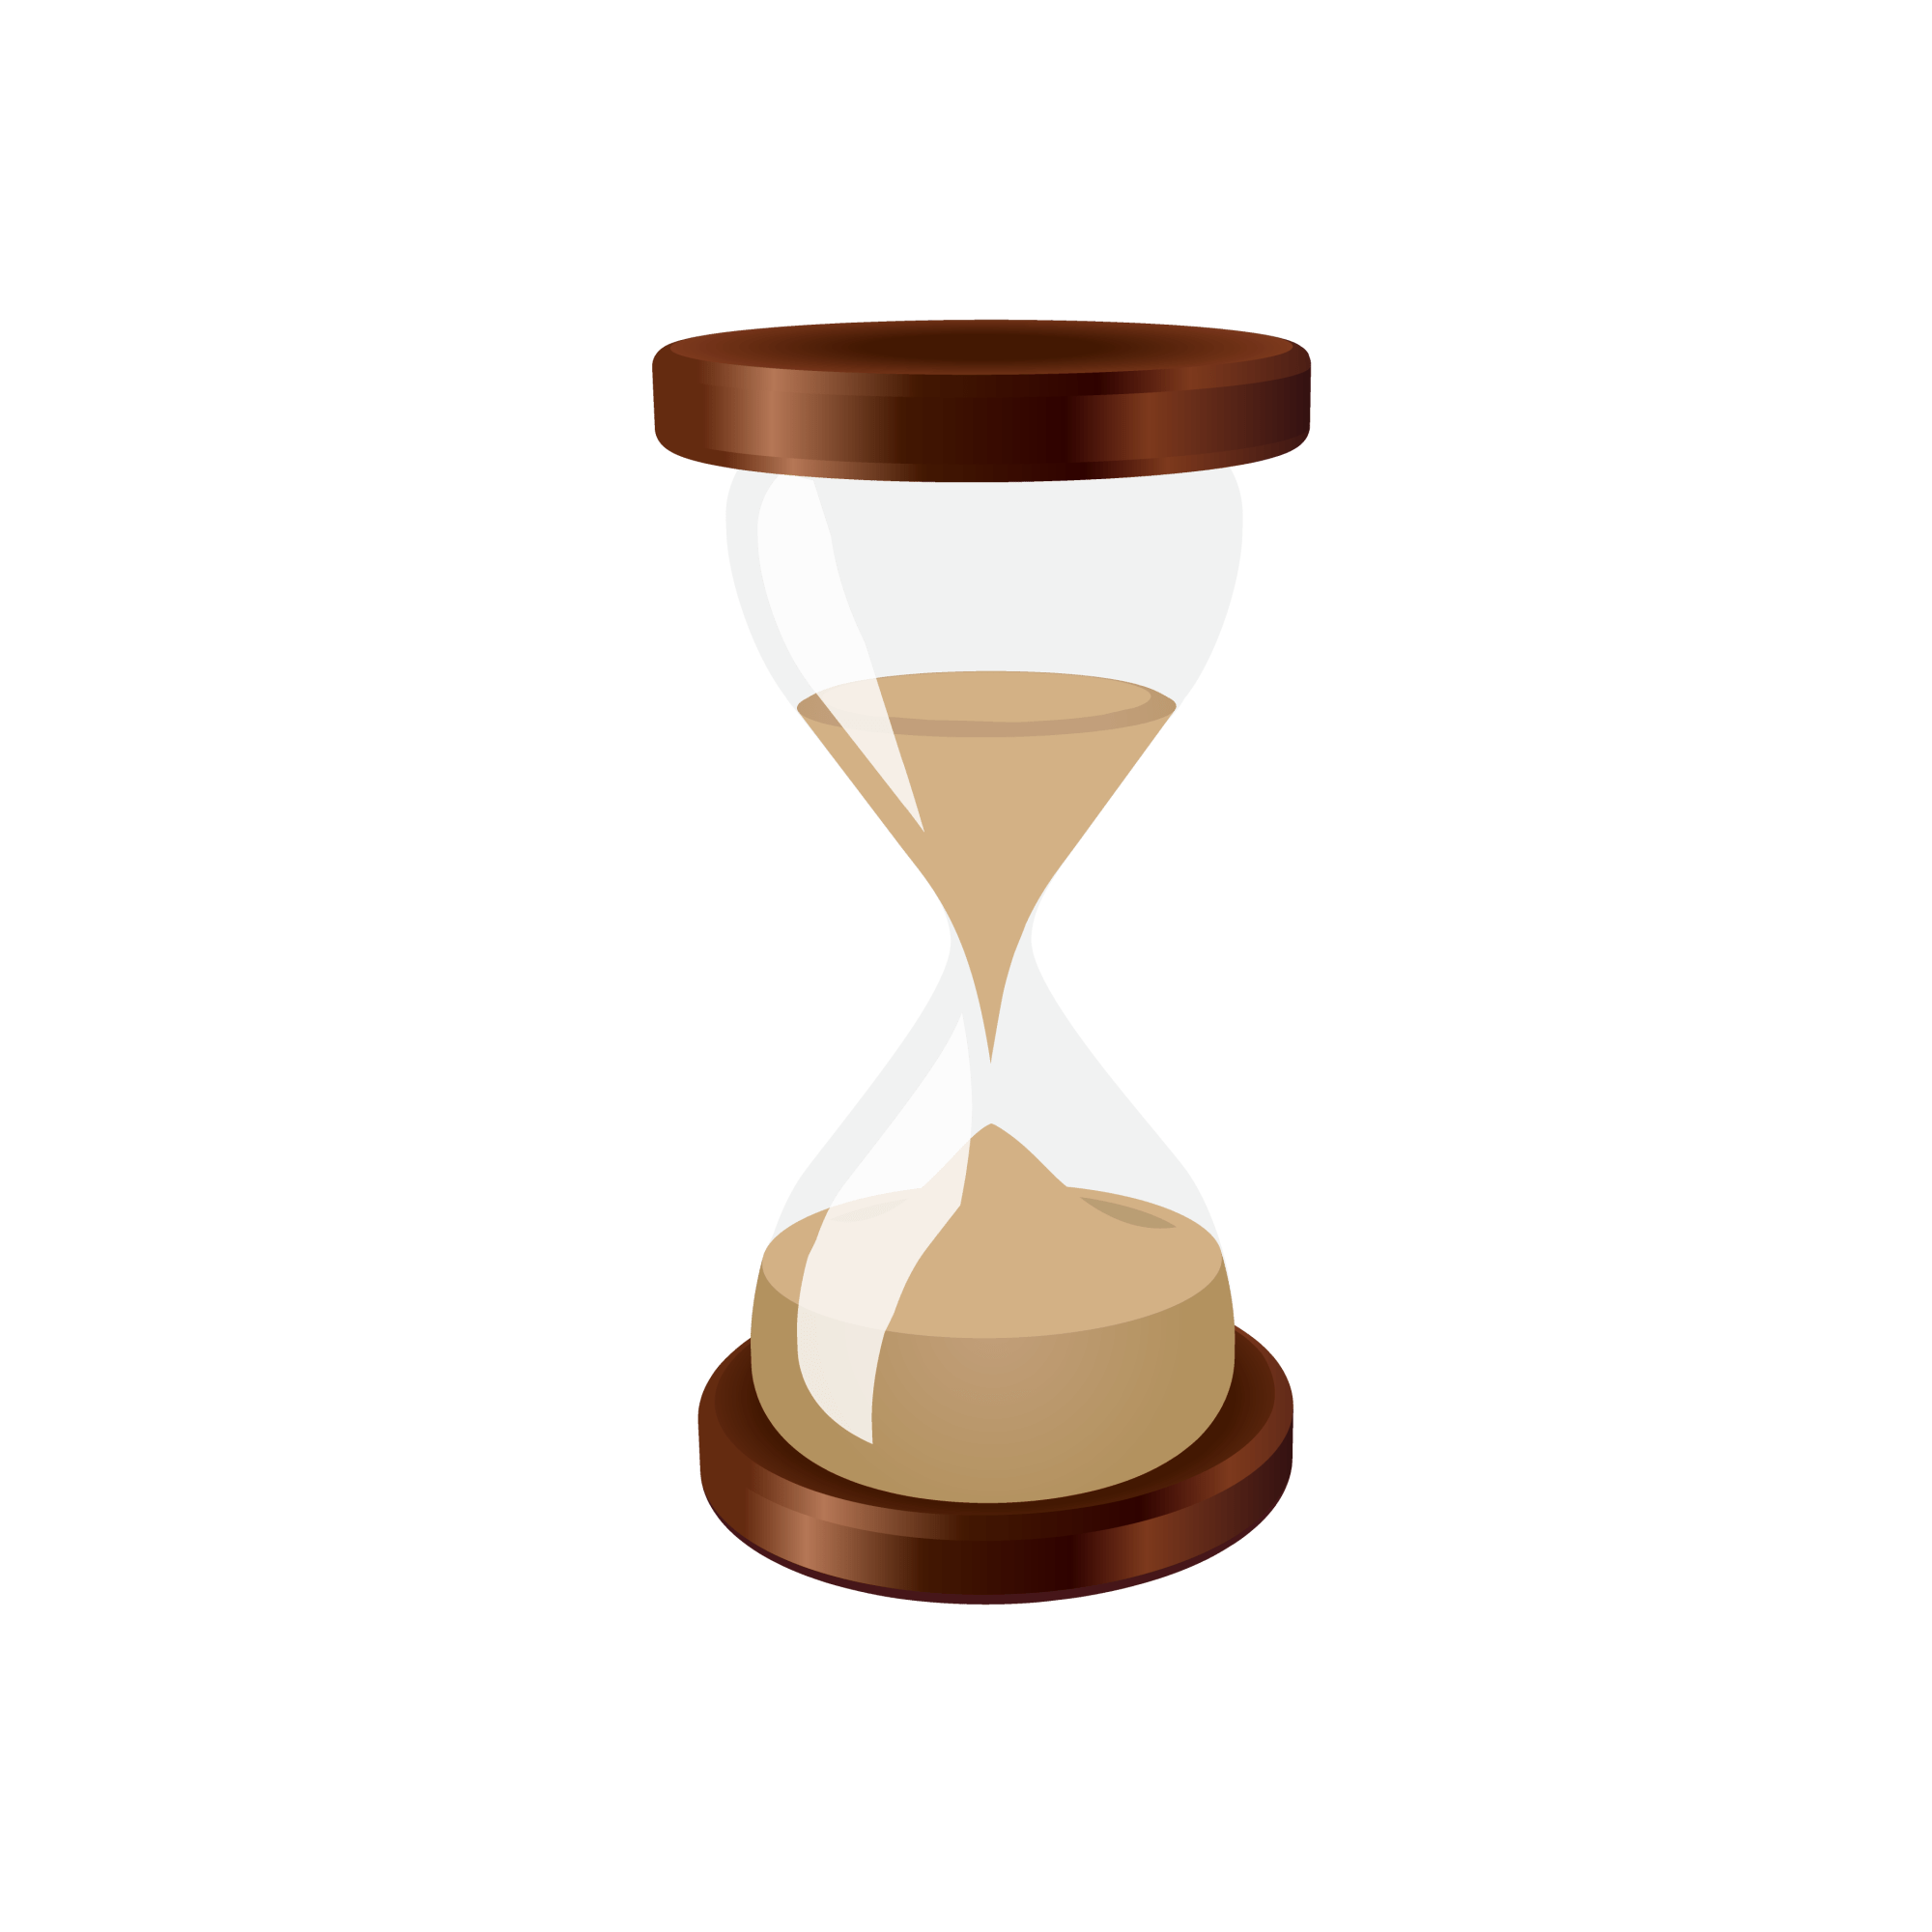 hight resolution of hourglass clipart vector sand clock clip arts